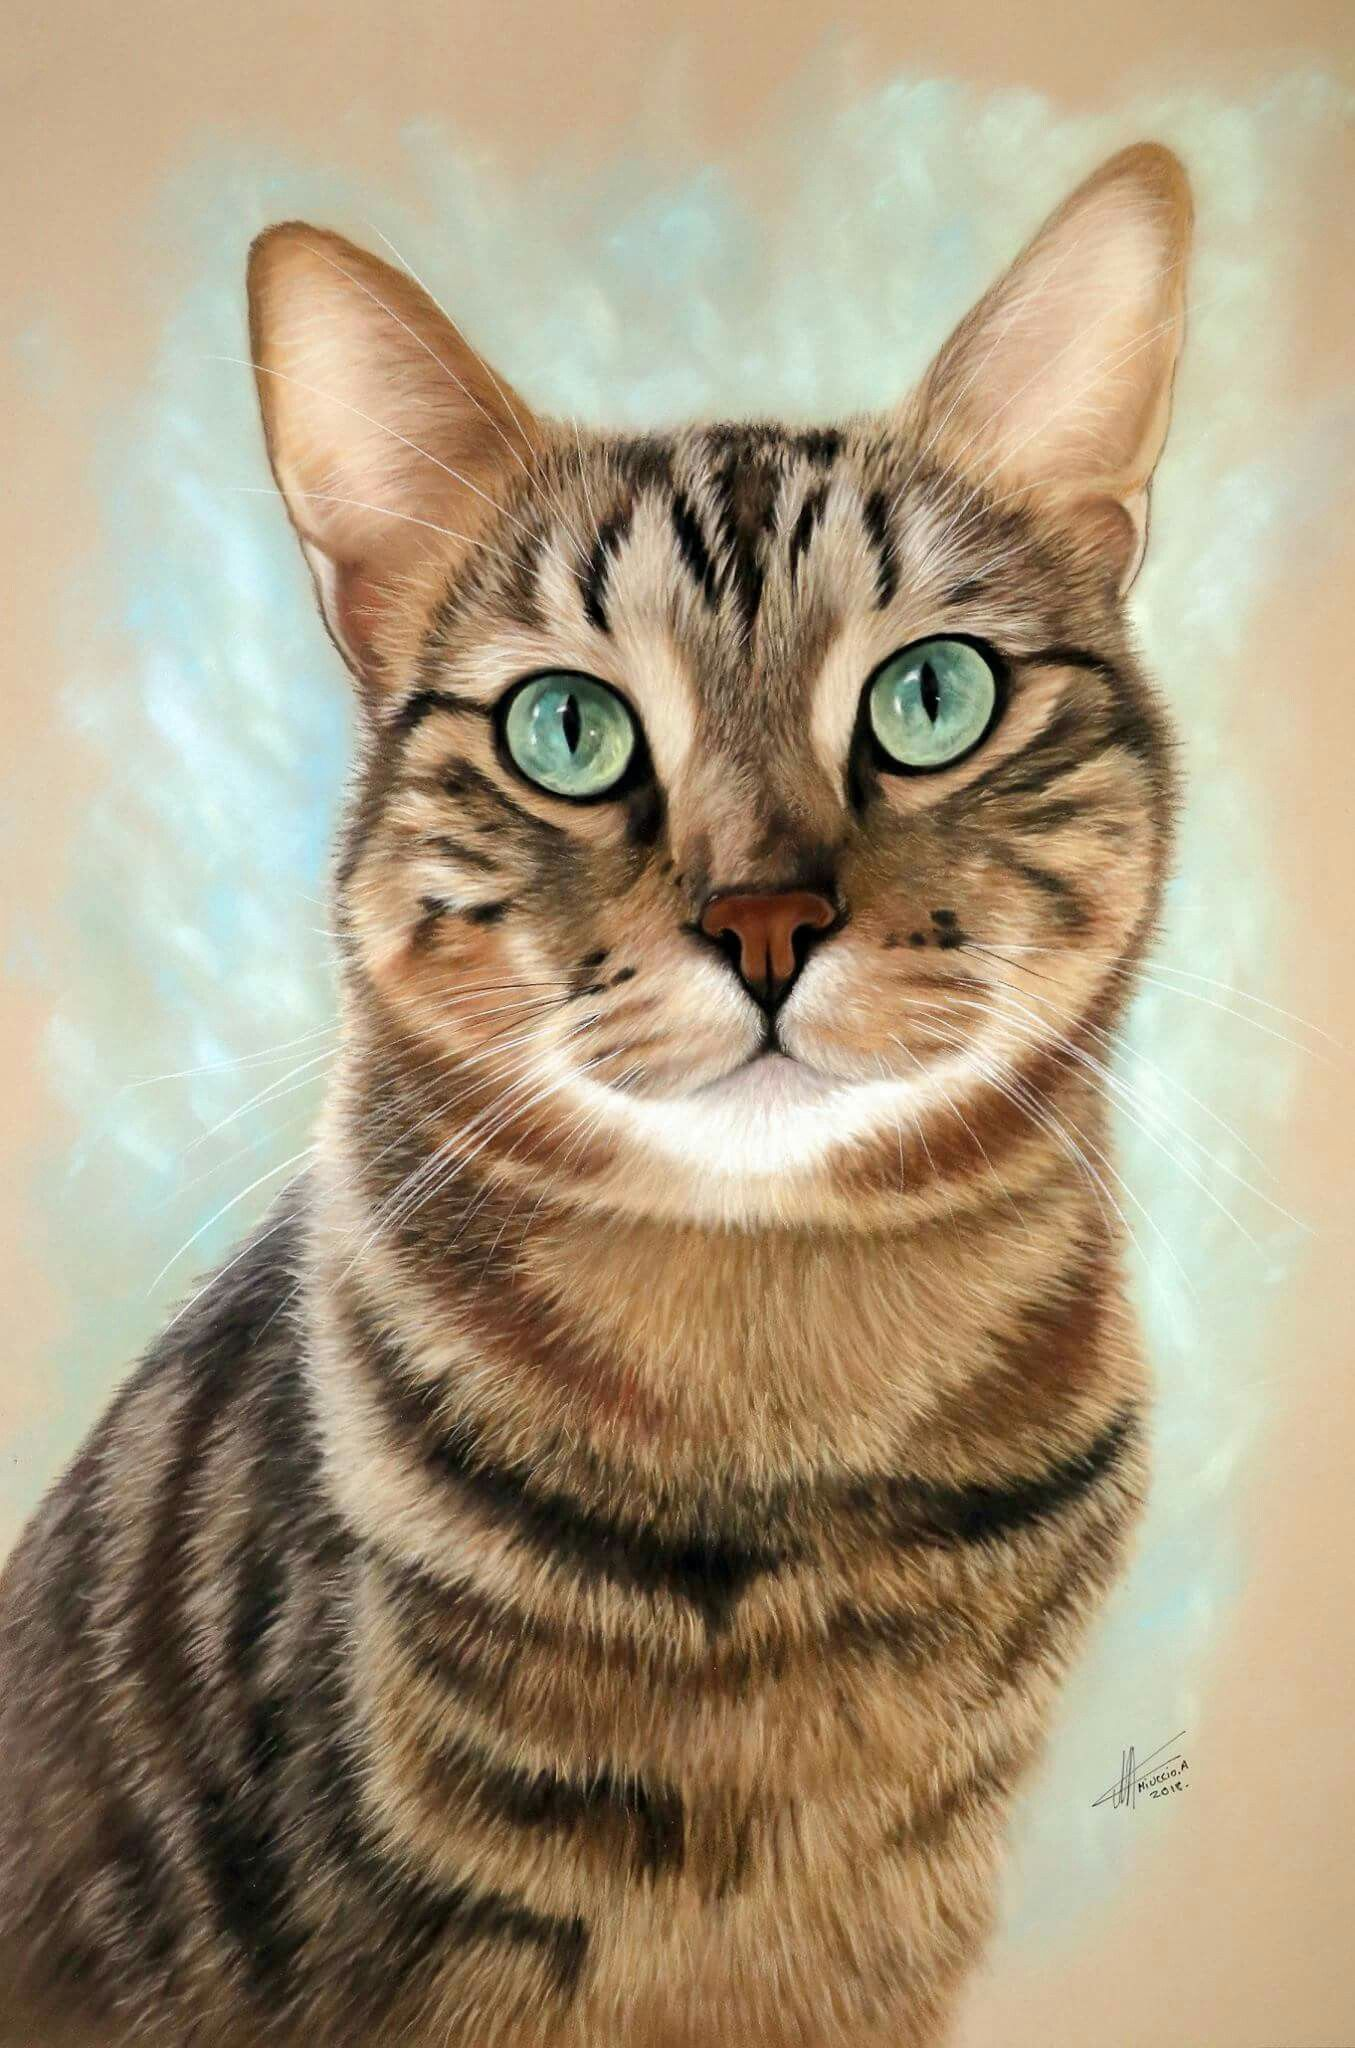 Sample Easy To Draw This Cat Painting Cat Painting Cat Portraits Cats Illustration